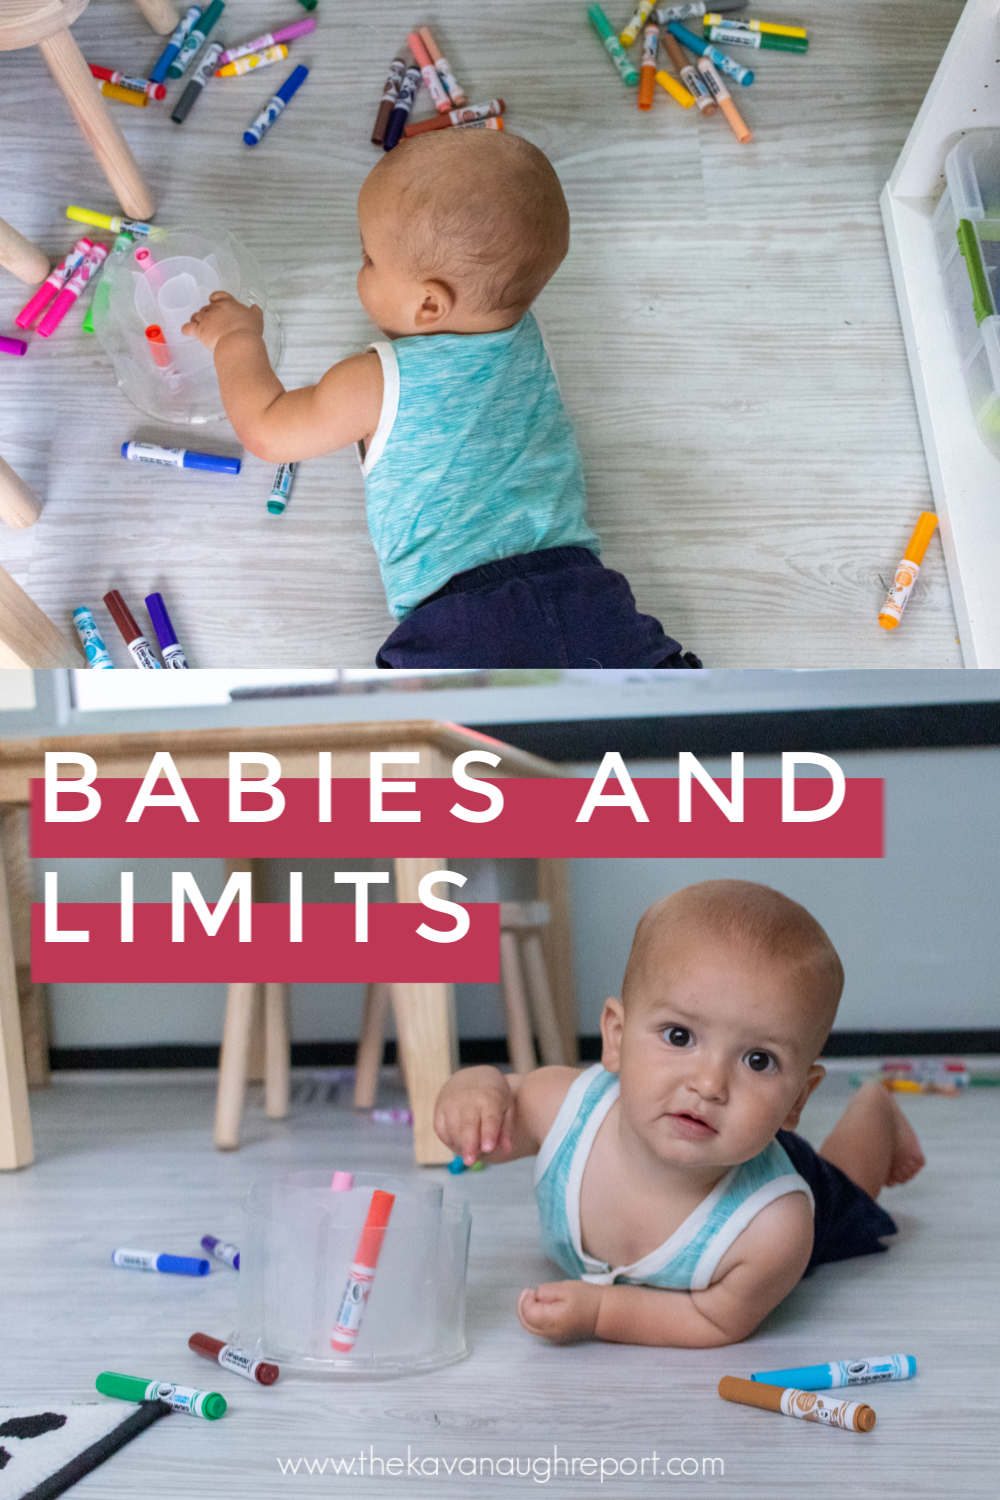 Parenting advice for disciplining babies through limit setting. Here are 4 Montessori steps to consider when setting limits with your baby.